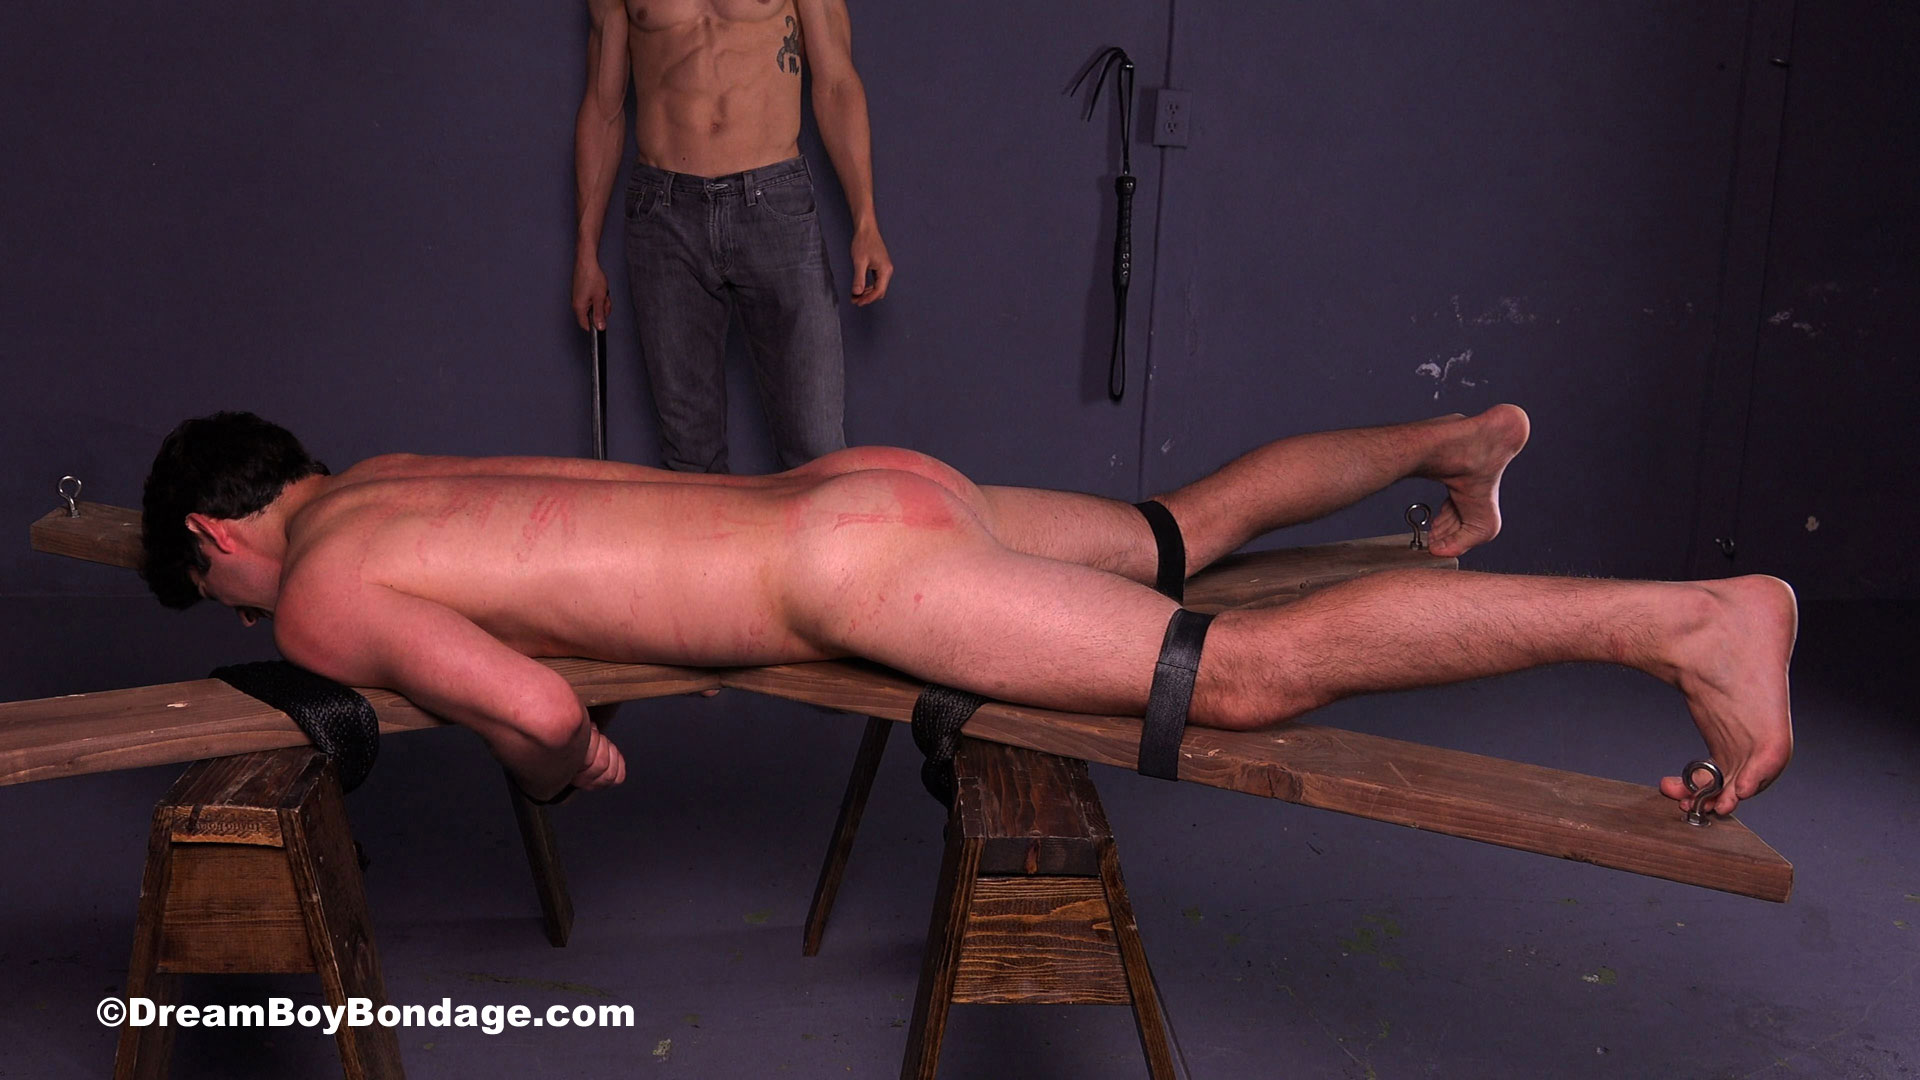 Video: Straight frat jock Austin is brutally flogged, spanked and penetrated